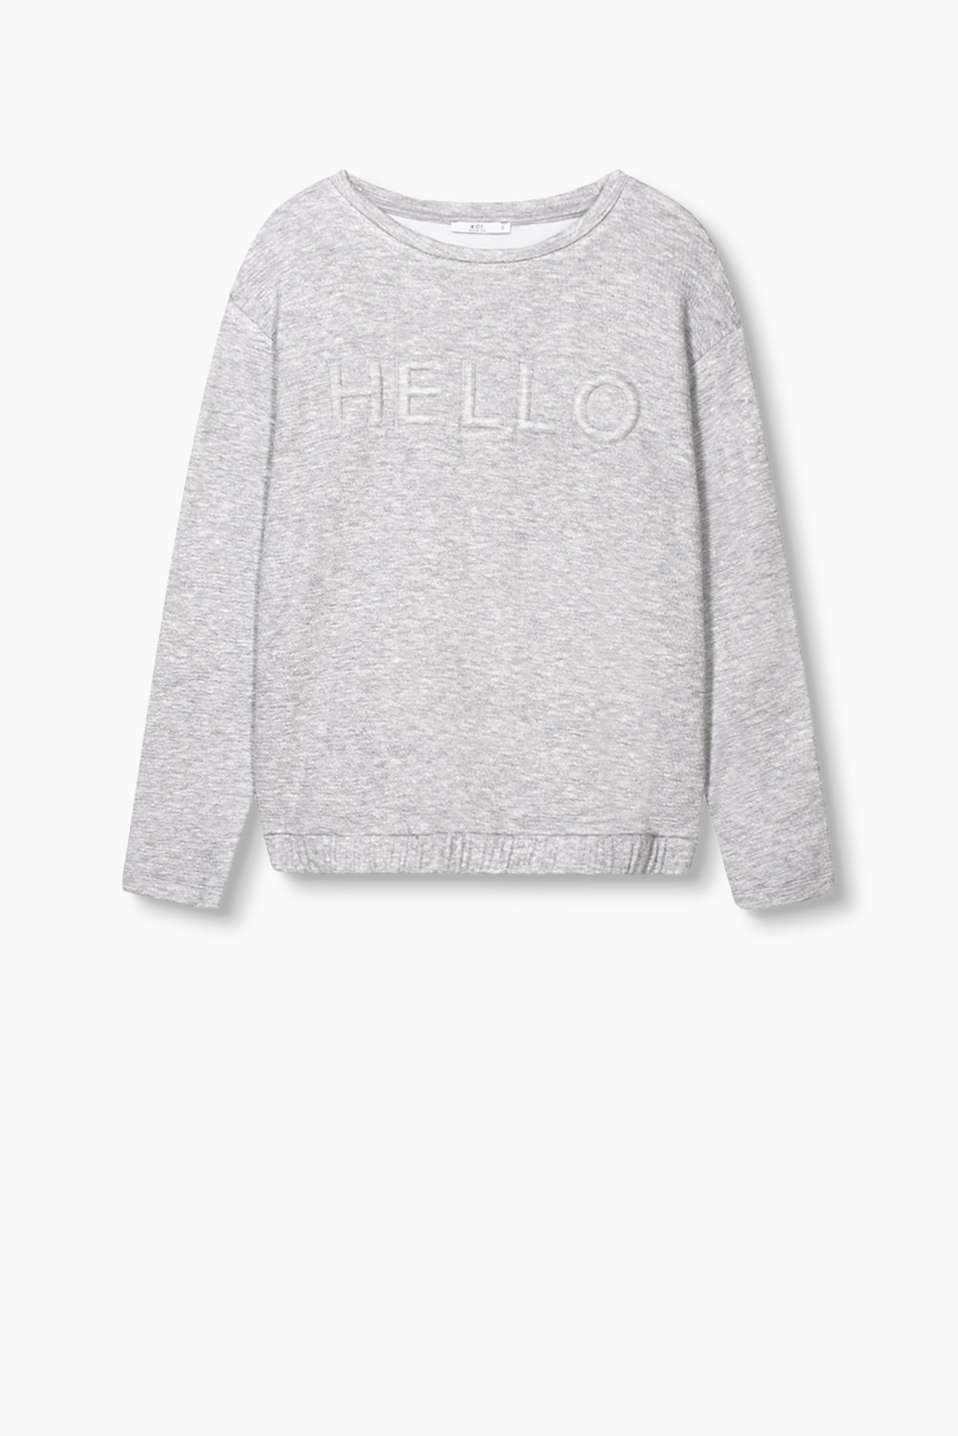 With raised lettering and an elasticated waistband: sweatshirt in a stretchy viscose blend.